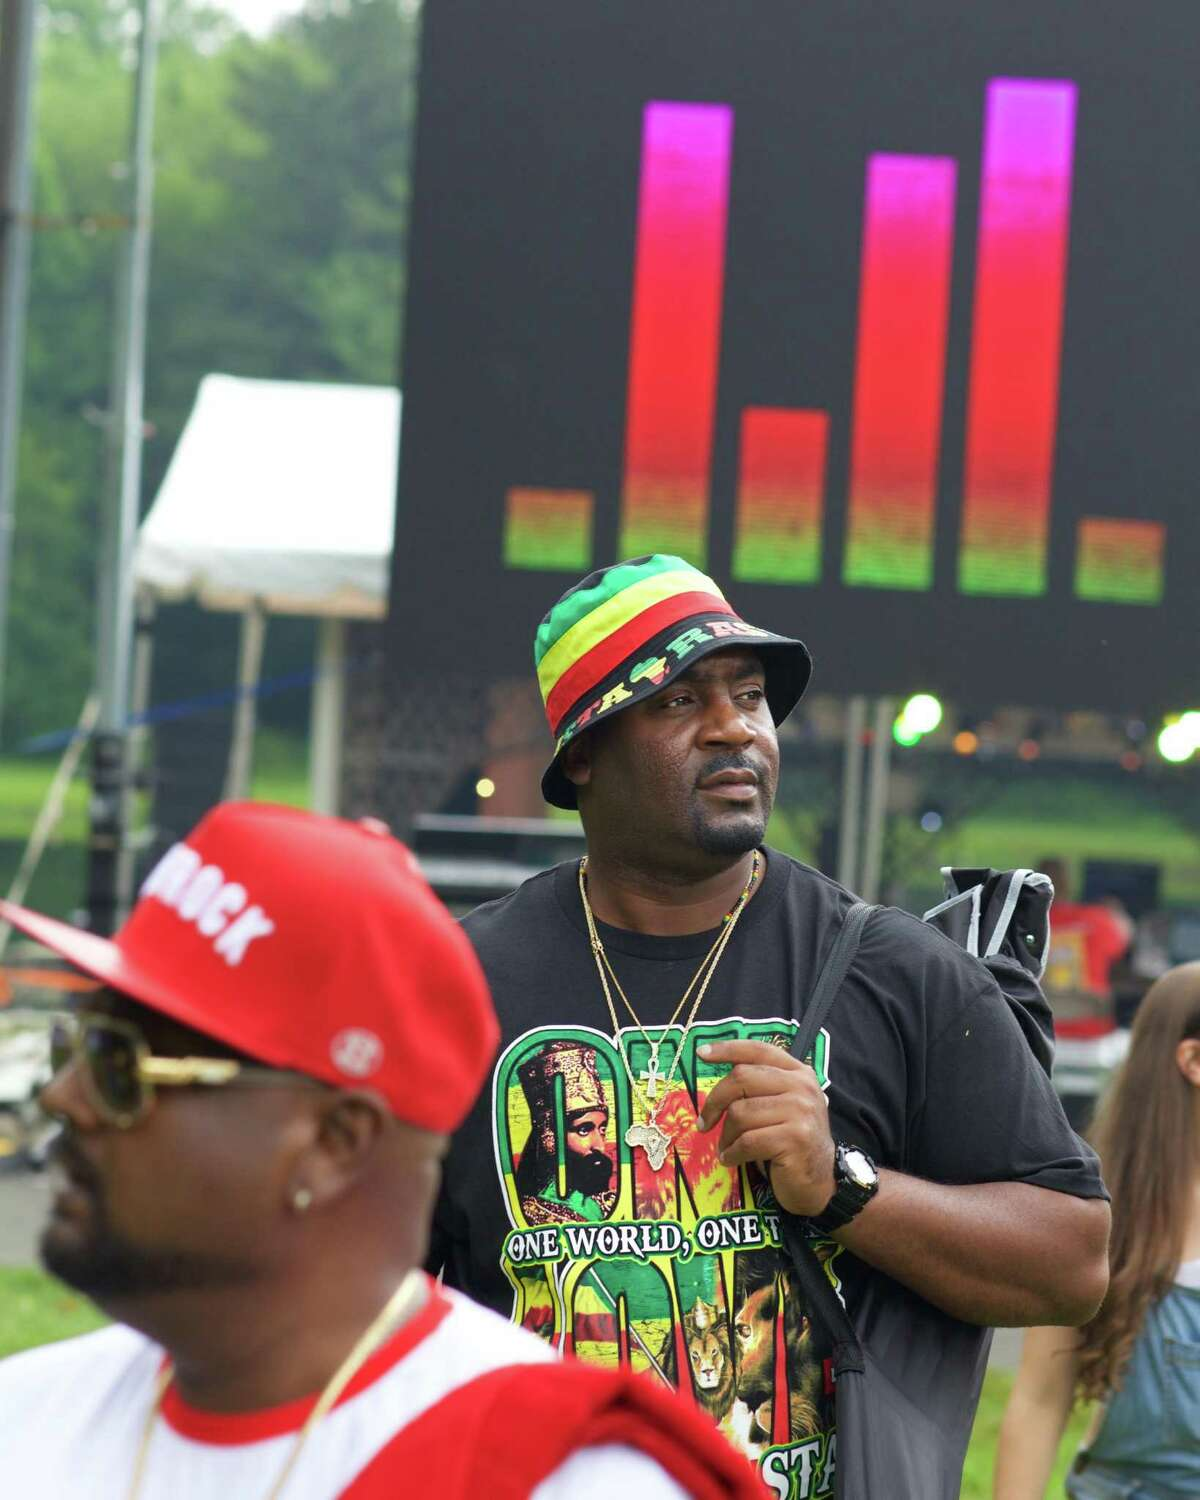 Andre Davis from Danbury scopes out a good spot on the lawn at the Sixth Annual Westside Reggae Festival that took place on Sunday, July 23rd, 2017, at Ives Concert Park in Danbury, CT.